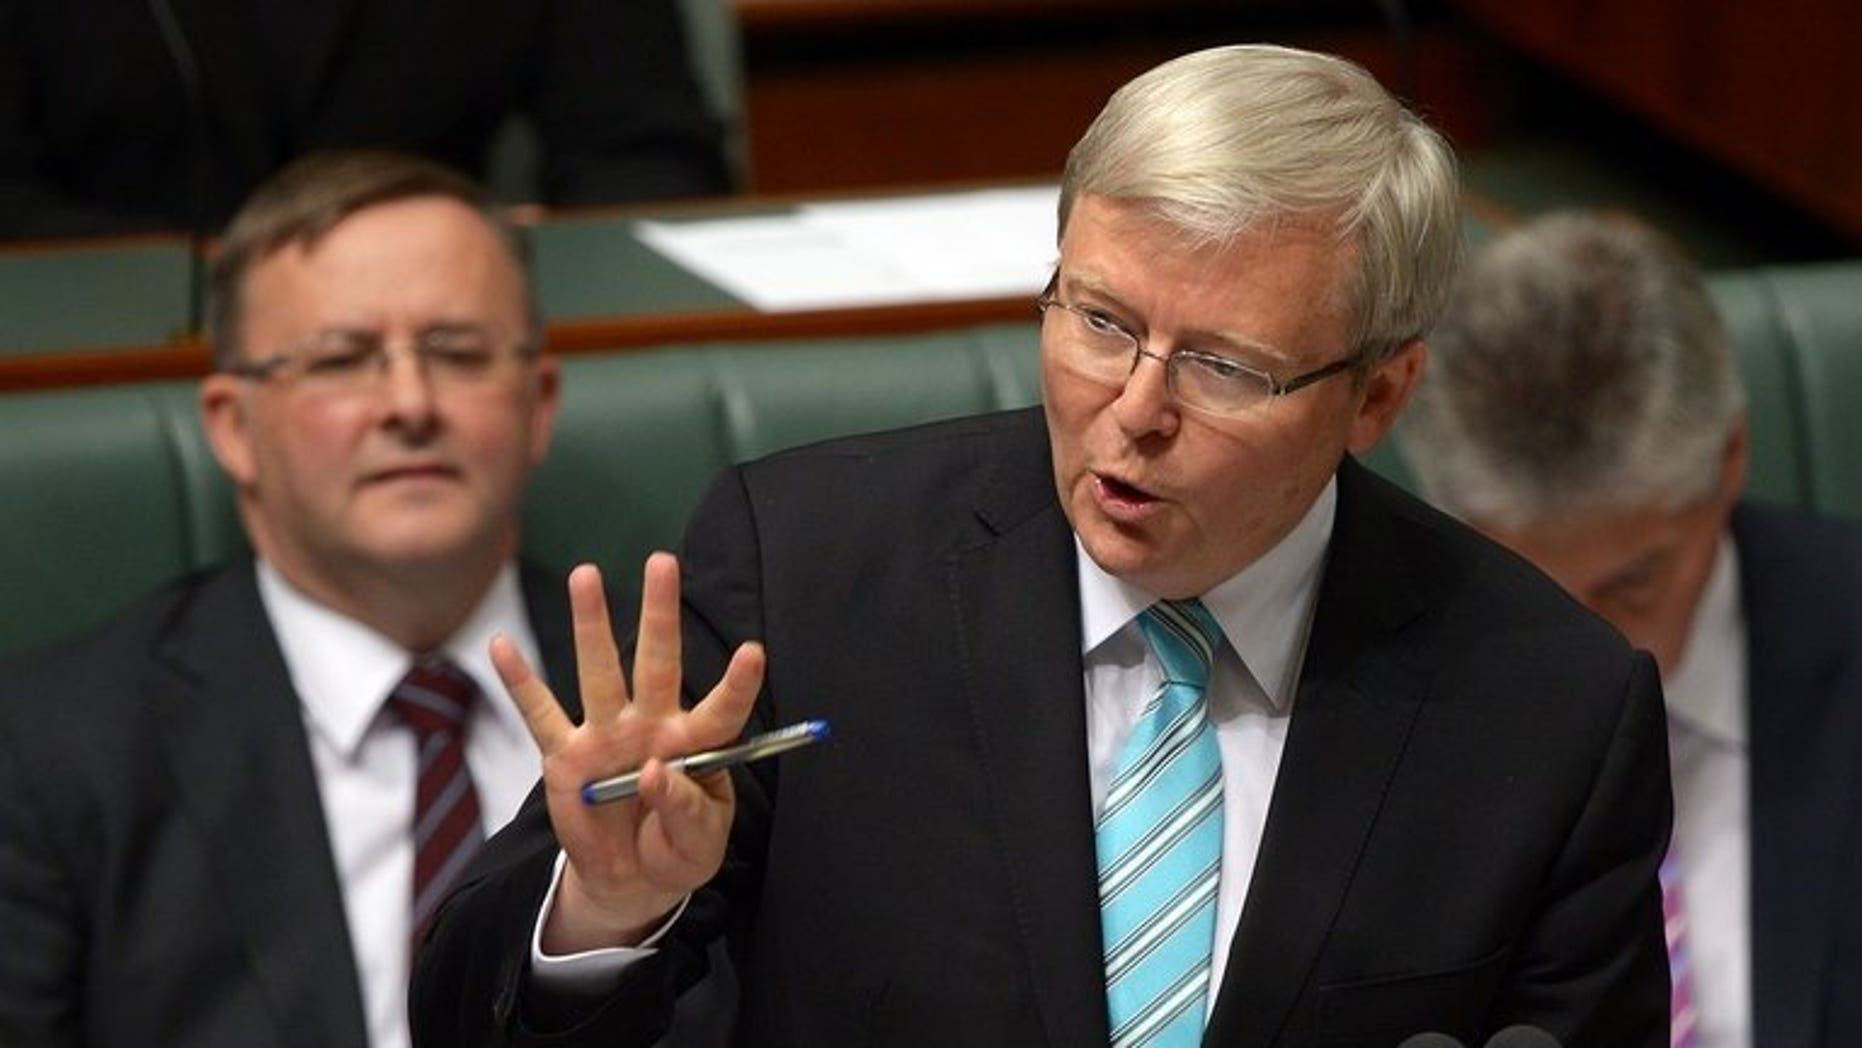 Australian Prime Minister Kevin Rudd speaks in parliament on June 27, 2013. His return has delivered his flagging Labor party a six percentage point bounce, according to polls that also showed him as preferred leader over Tony Abbott.